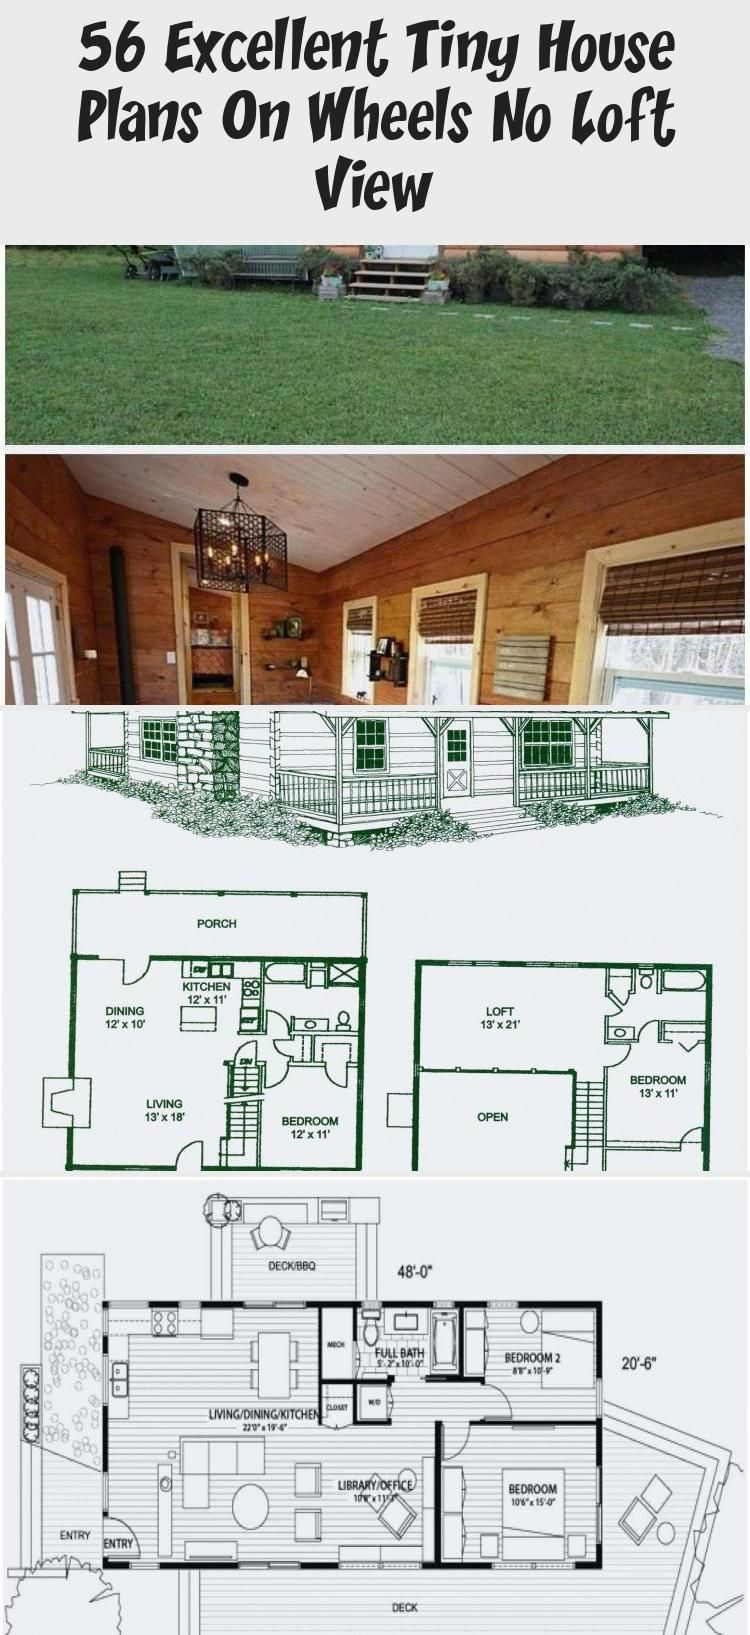 Tiny House On Wheels Floor Plans With No Loft